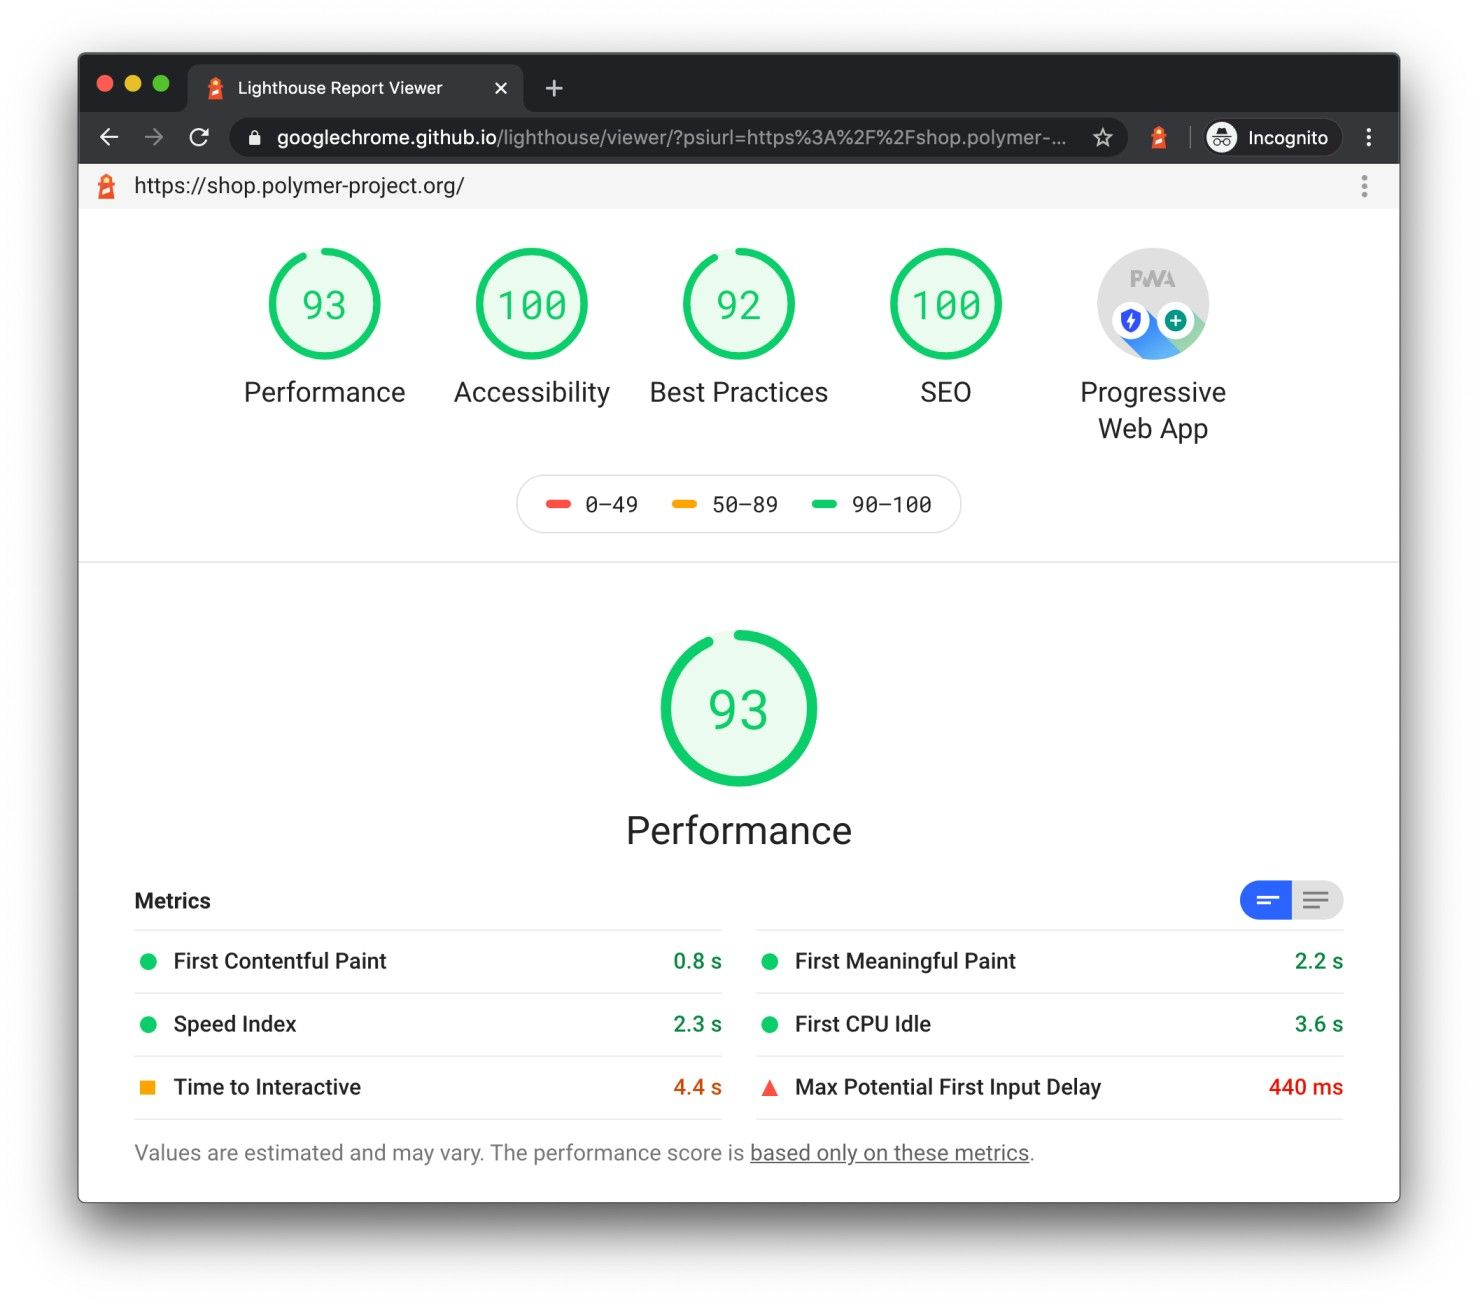 Example of an app performance report